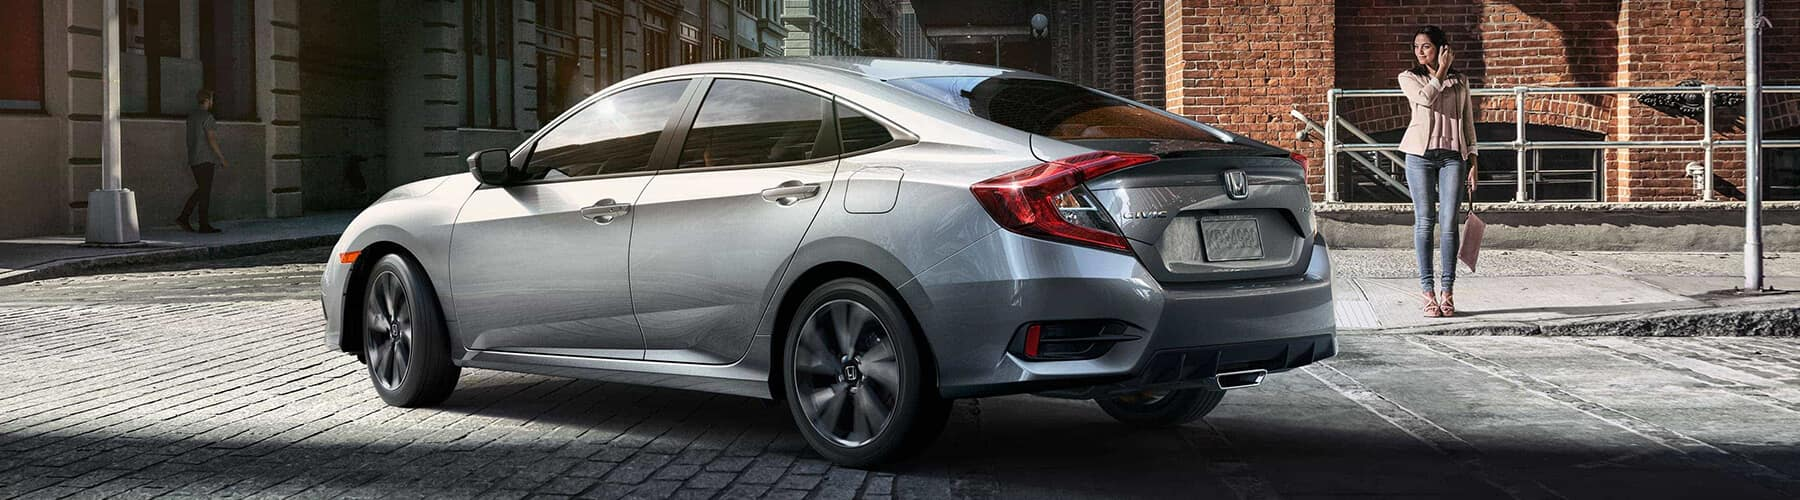 2020 Honda Civic Sedan Slider